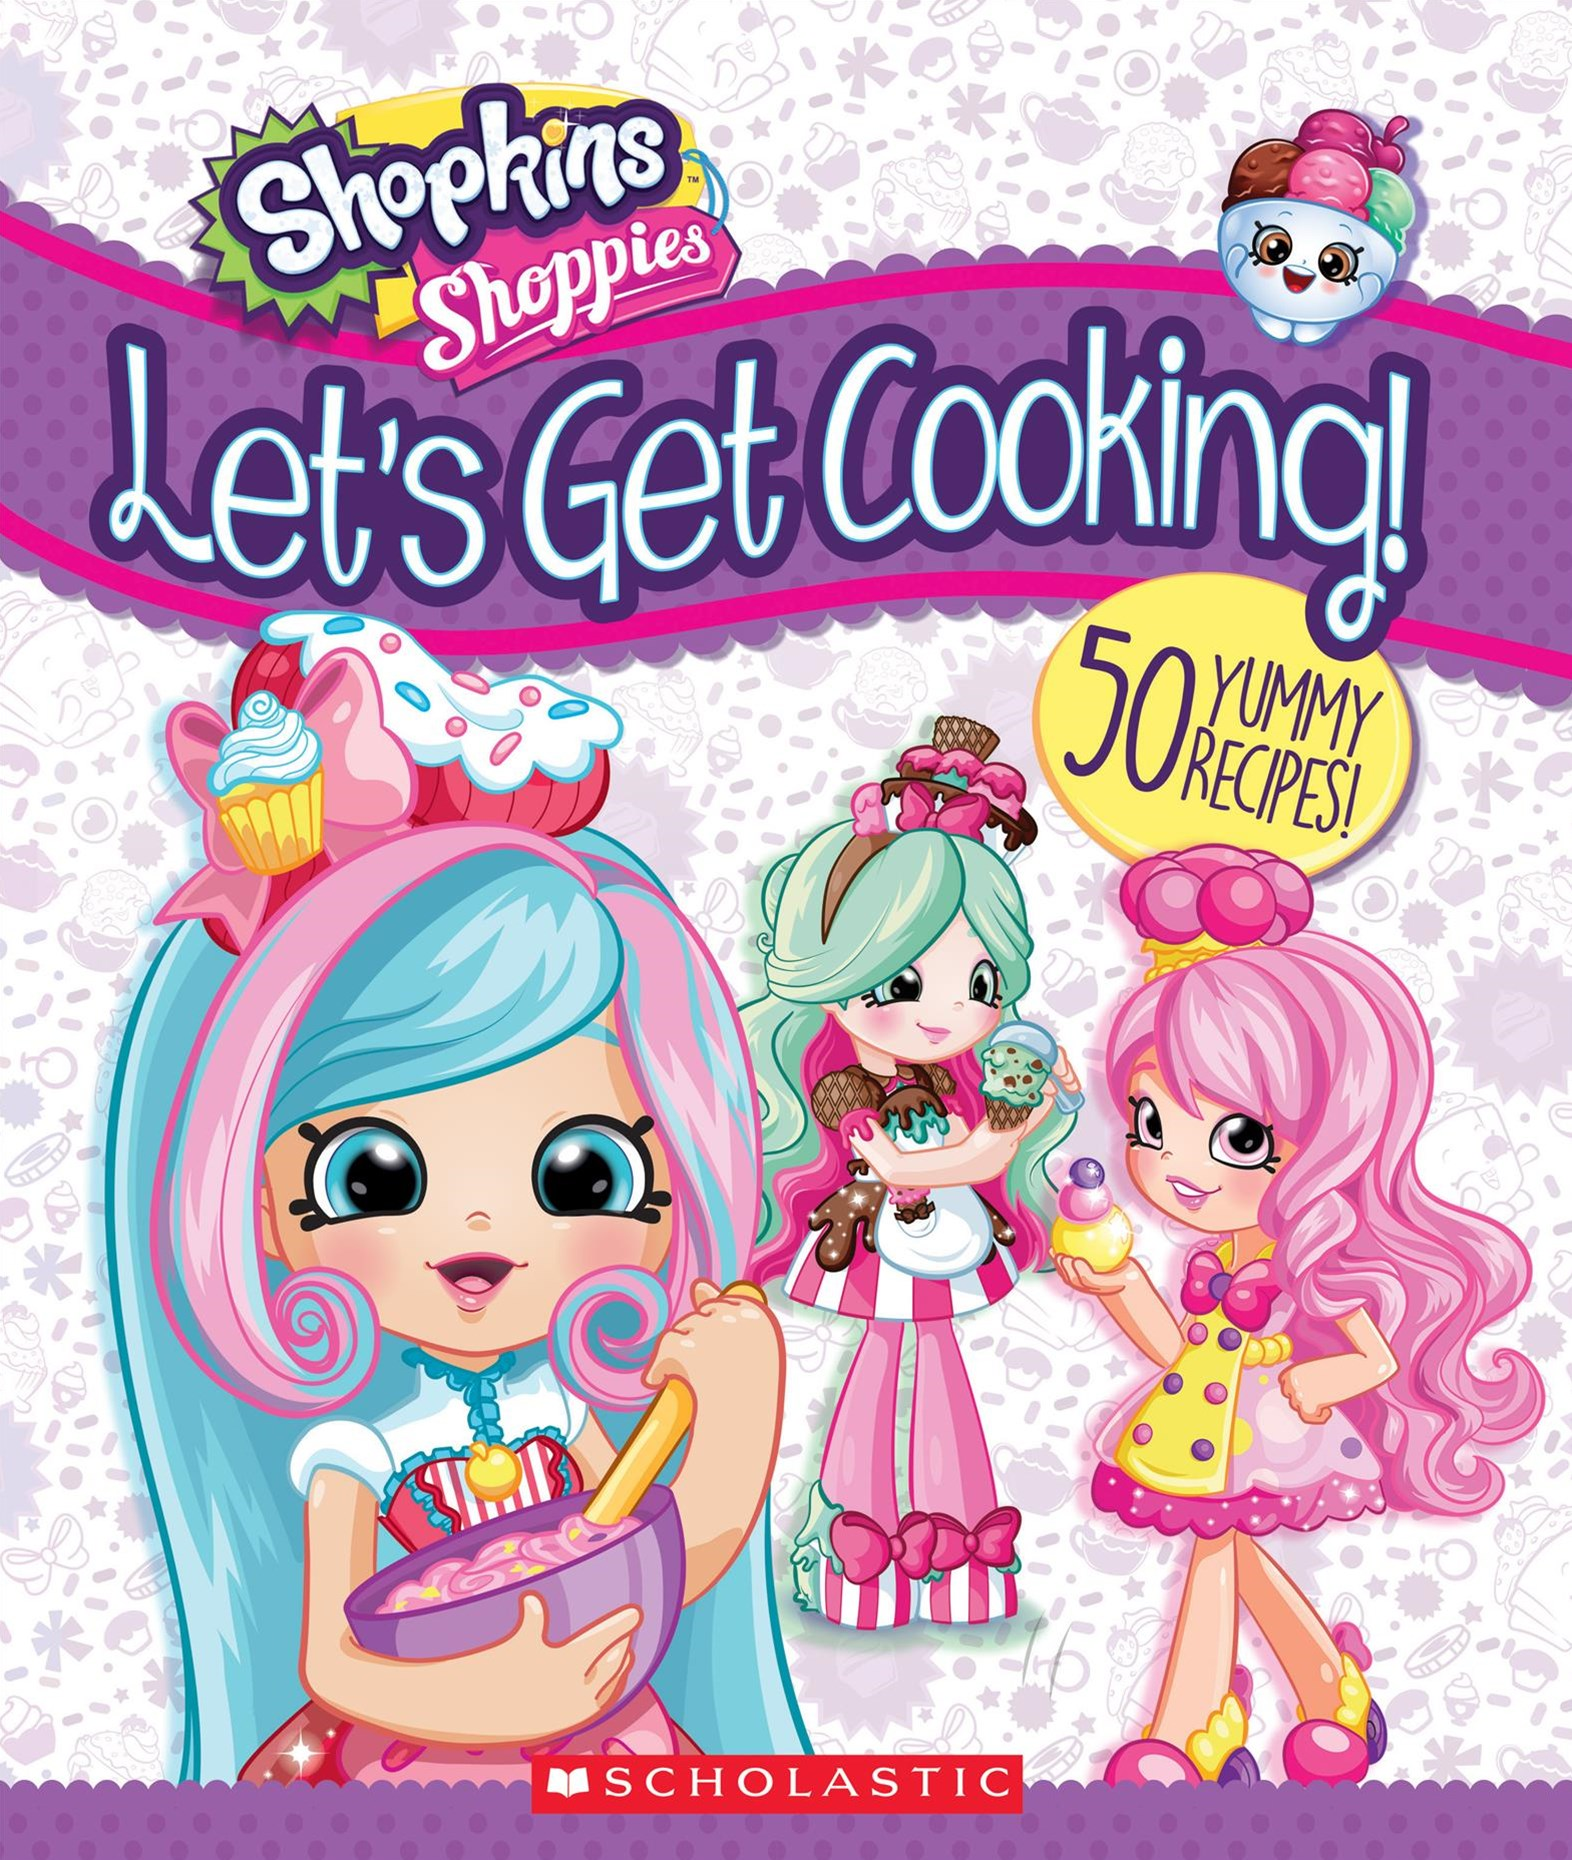 Shopkins Shoppies: Lets Get Cooking!